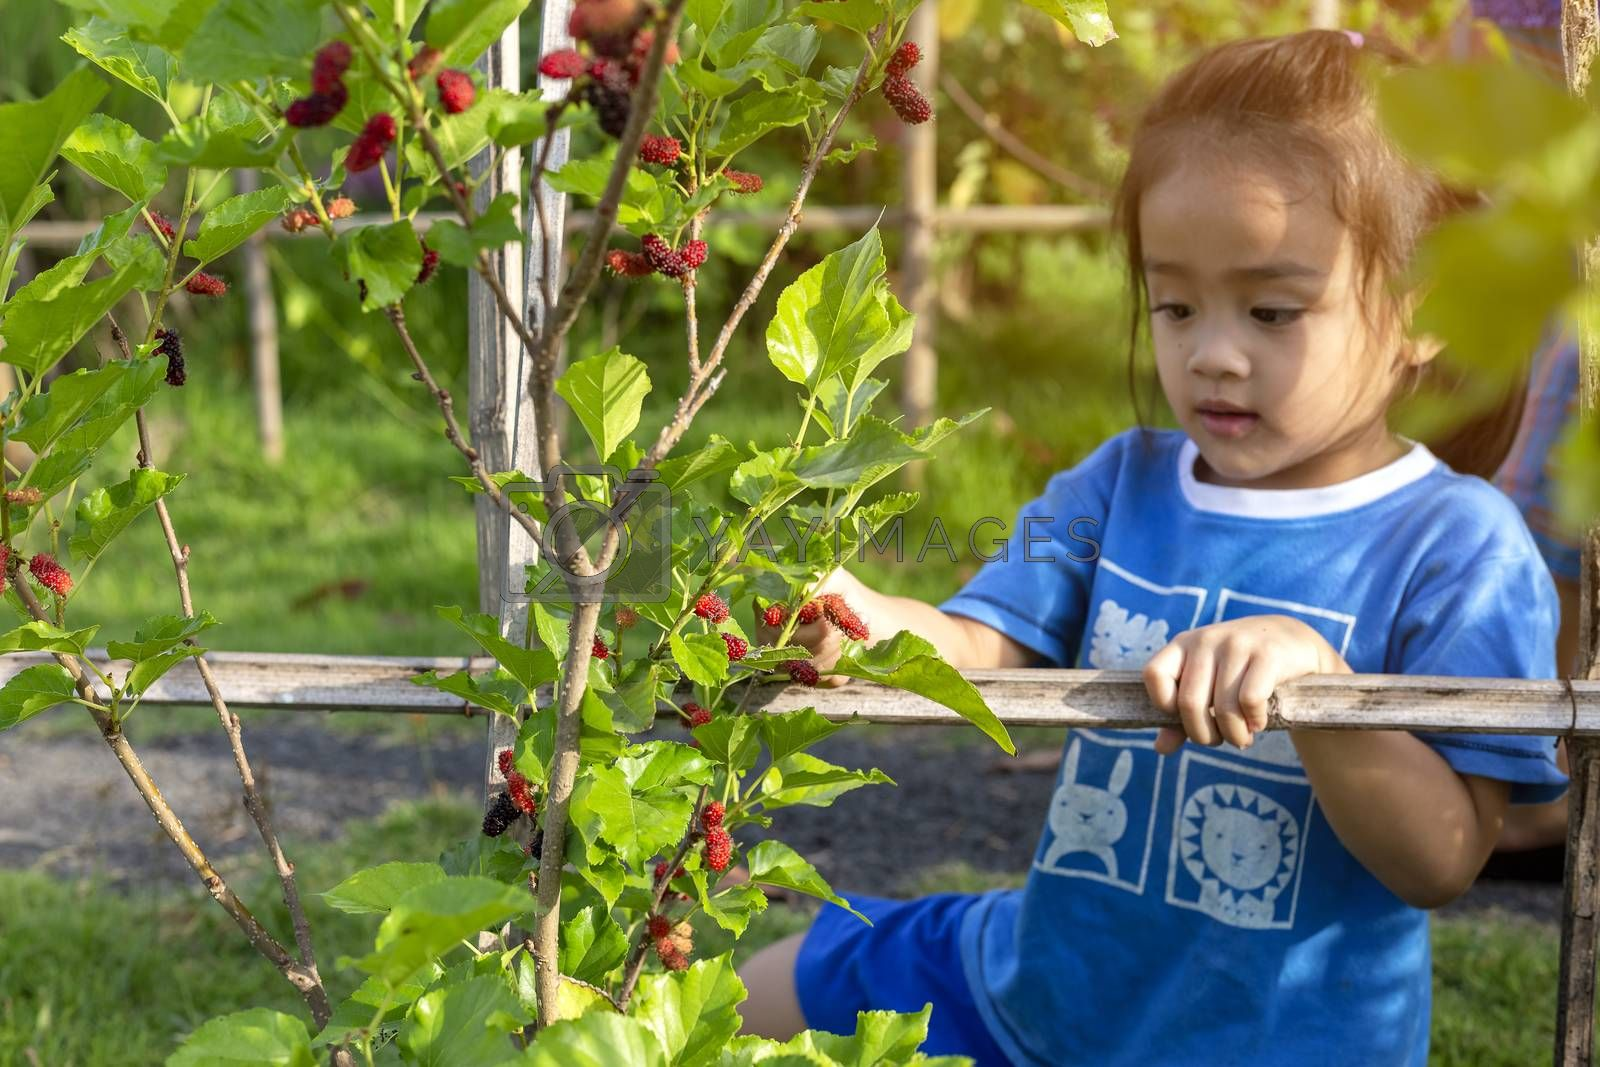 Cute little girl learning how to farm and garden